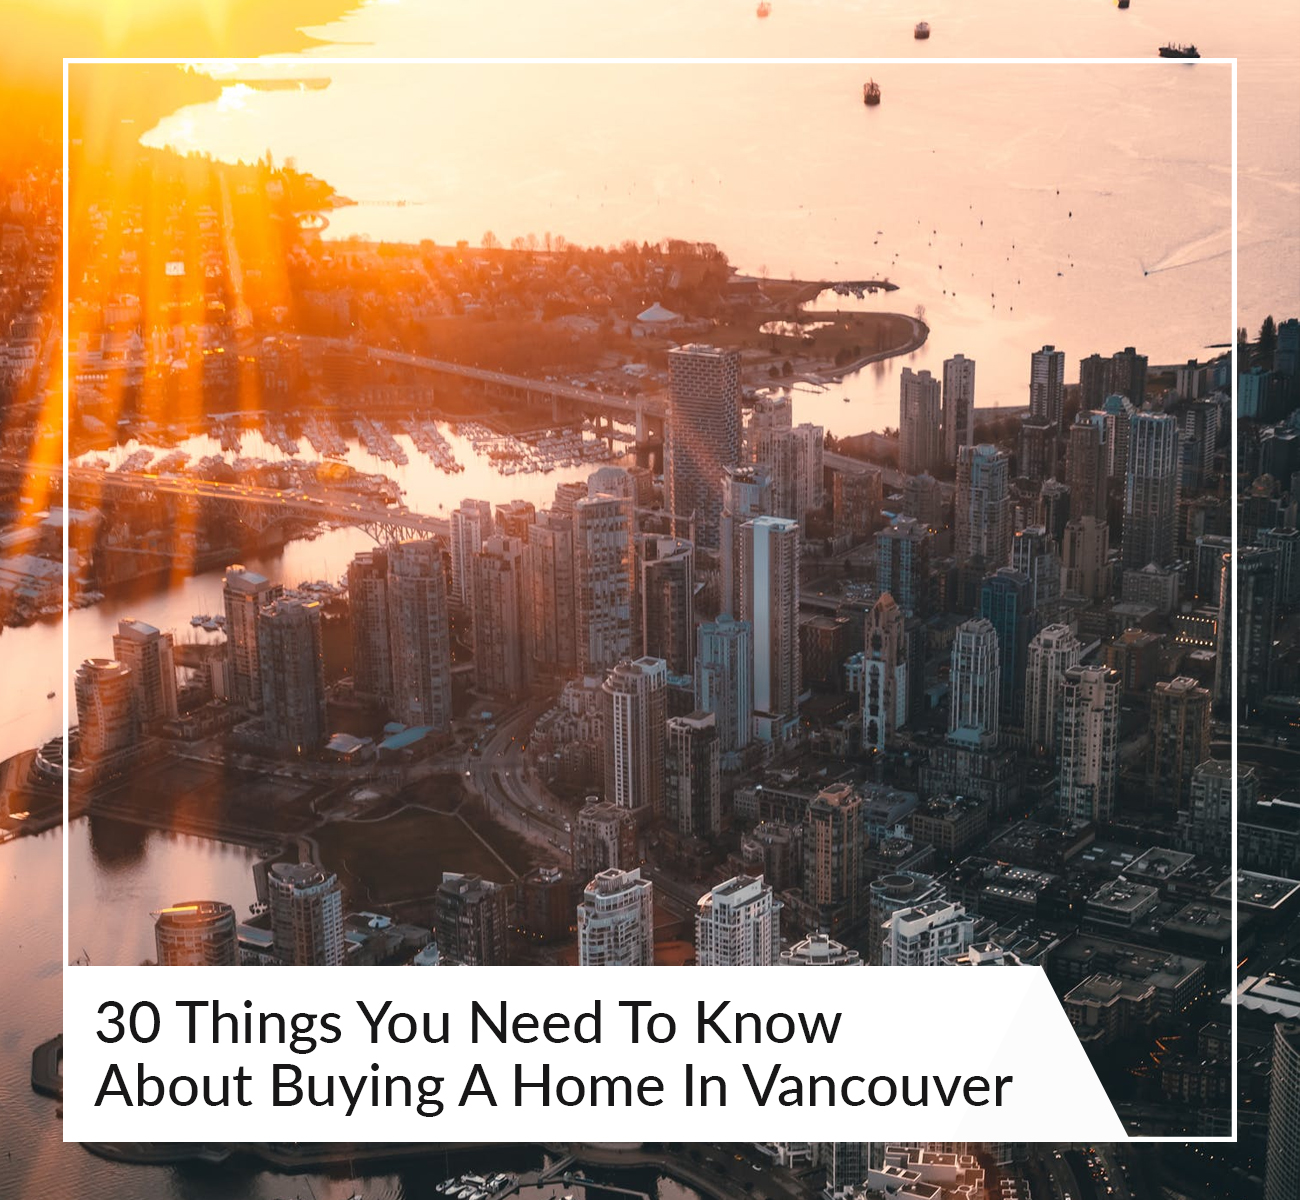 30 Things To Know About Buying A Home in Vancouver, BC